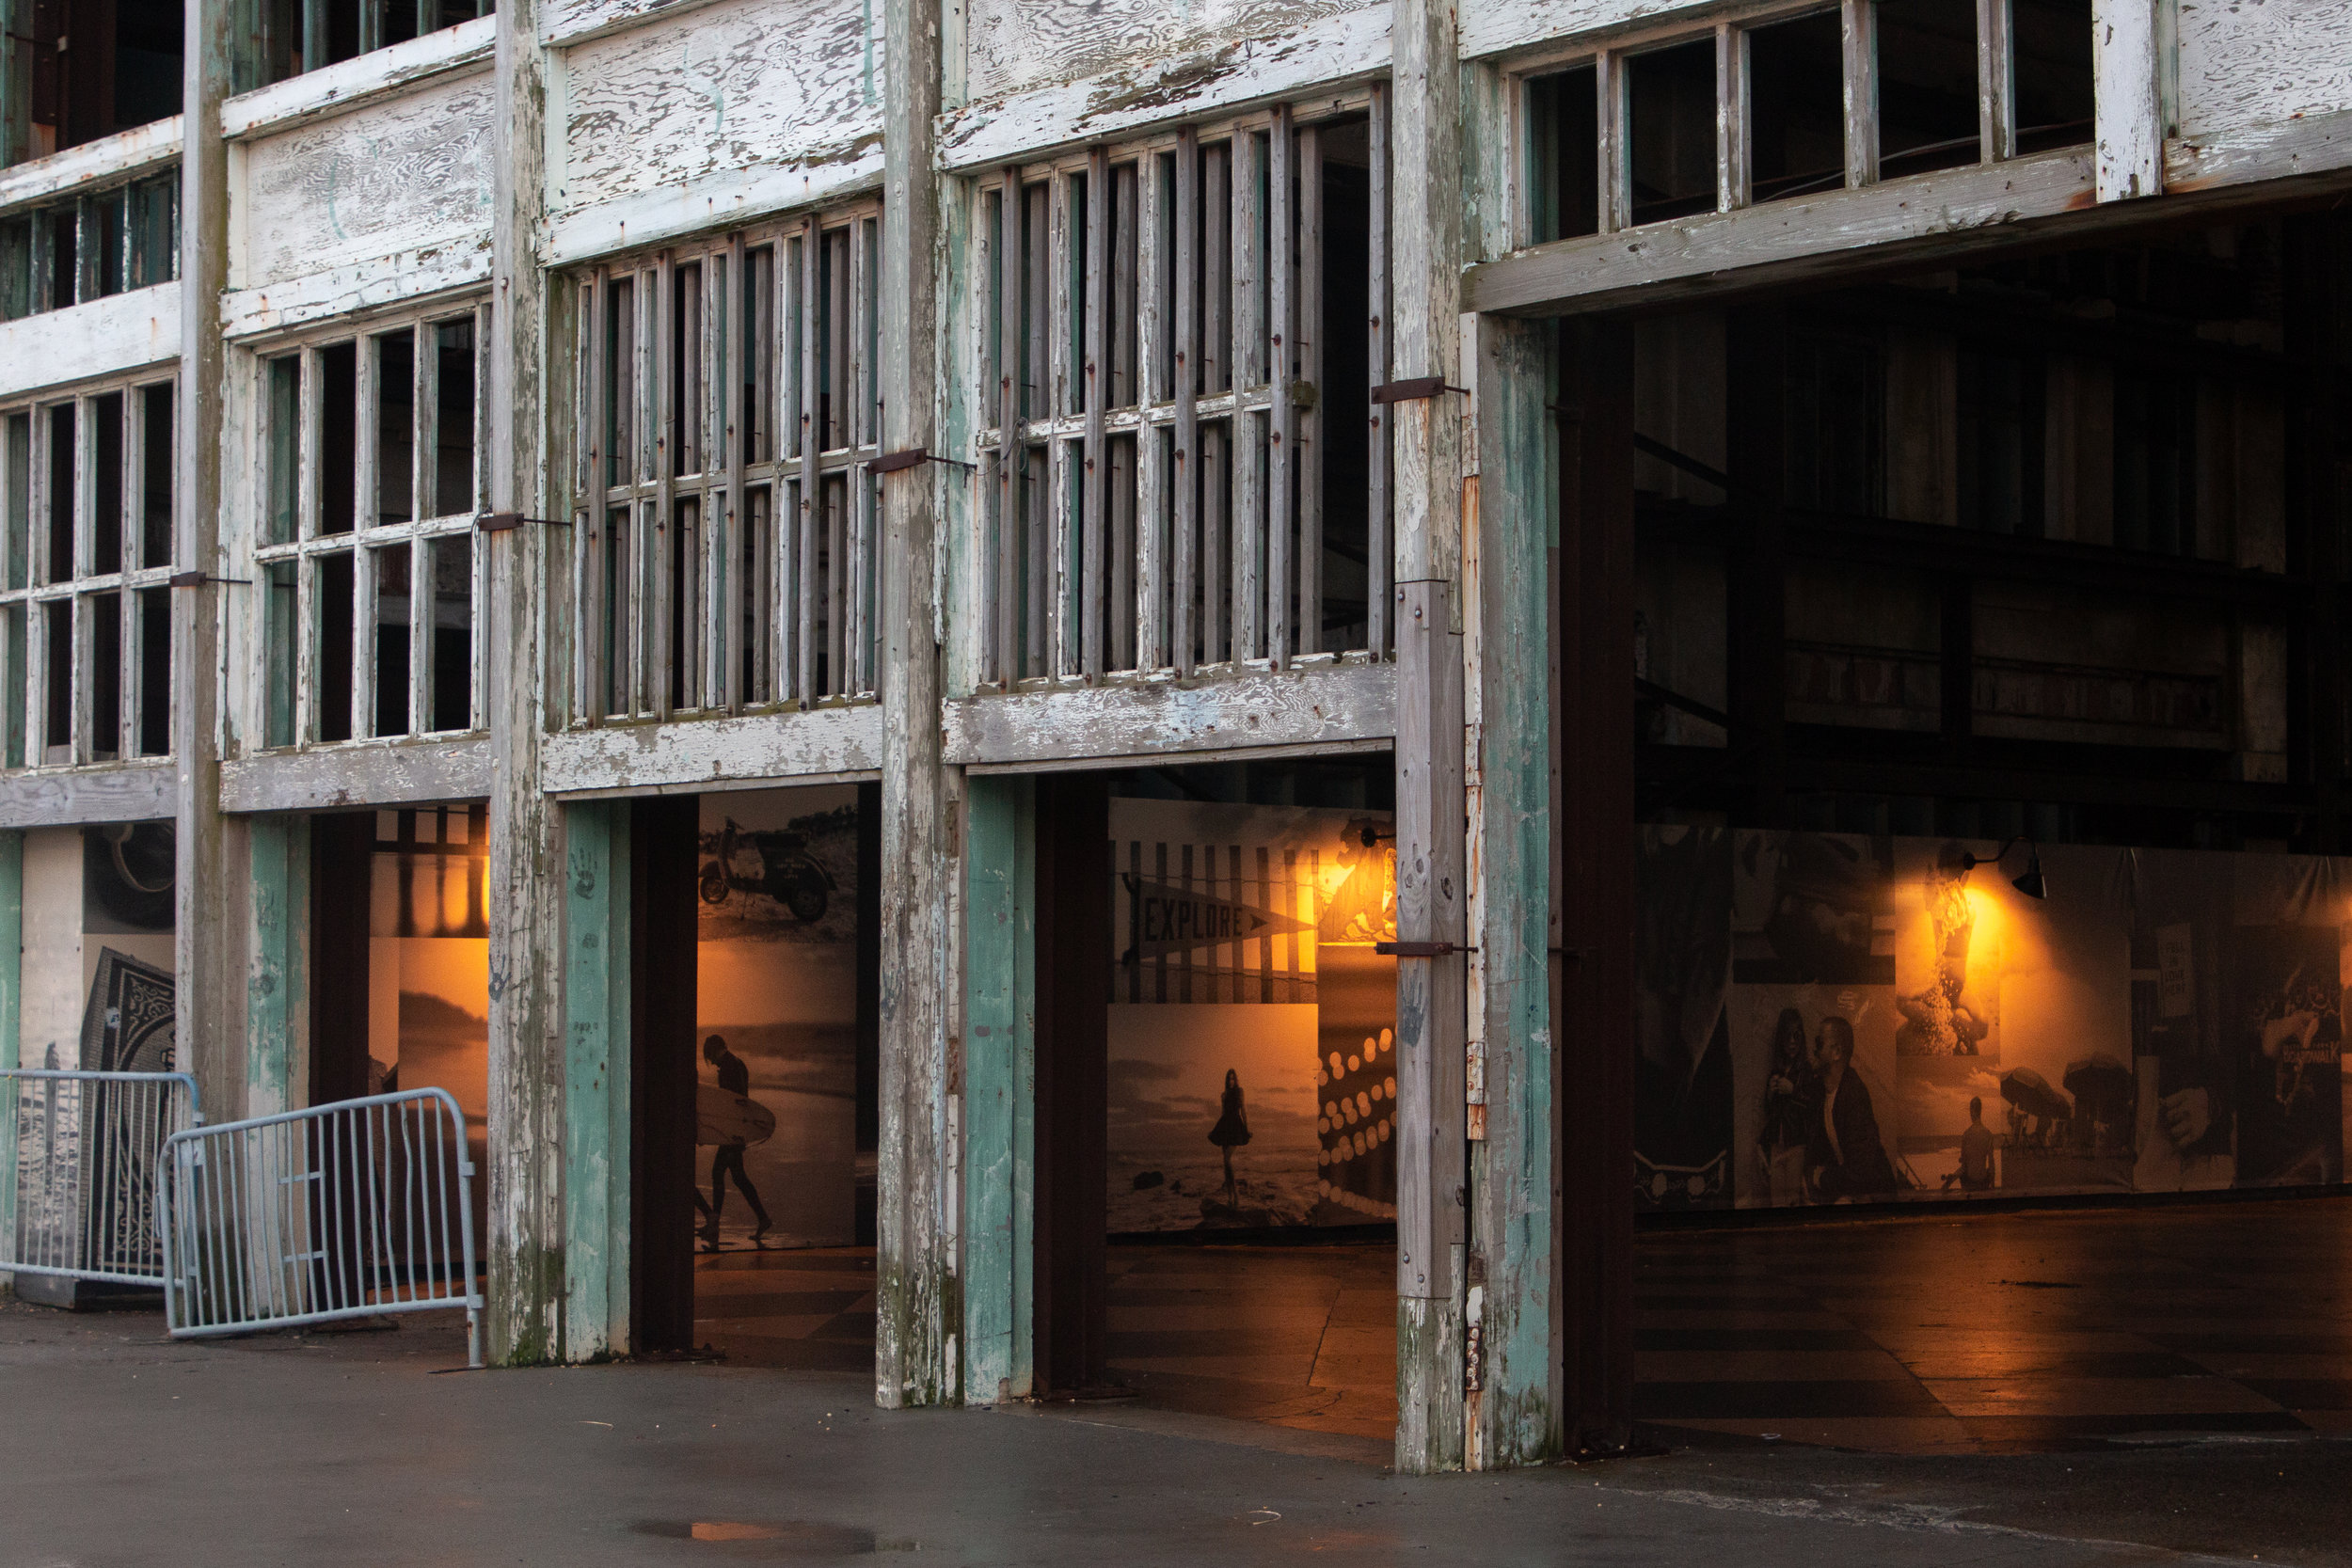 old abandoned building in Asbury Park, New Jersey. Photo by Kayleigh Ann Archbold.